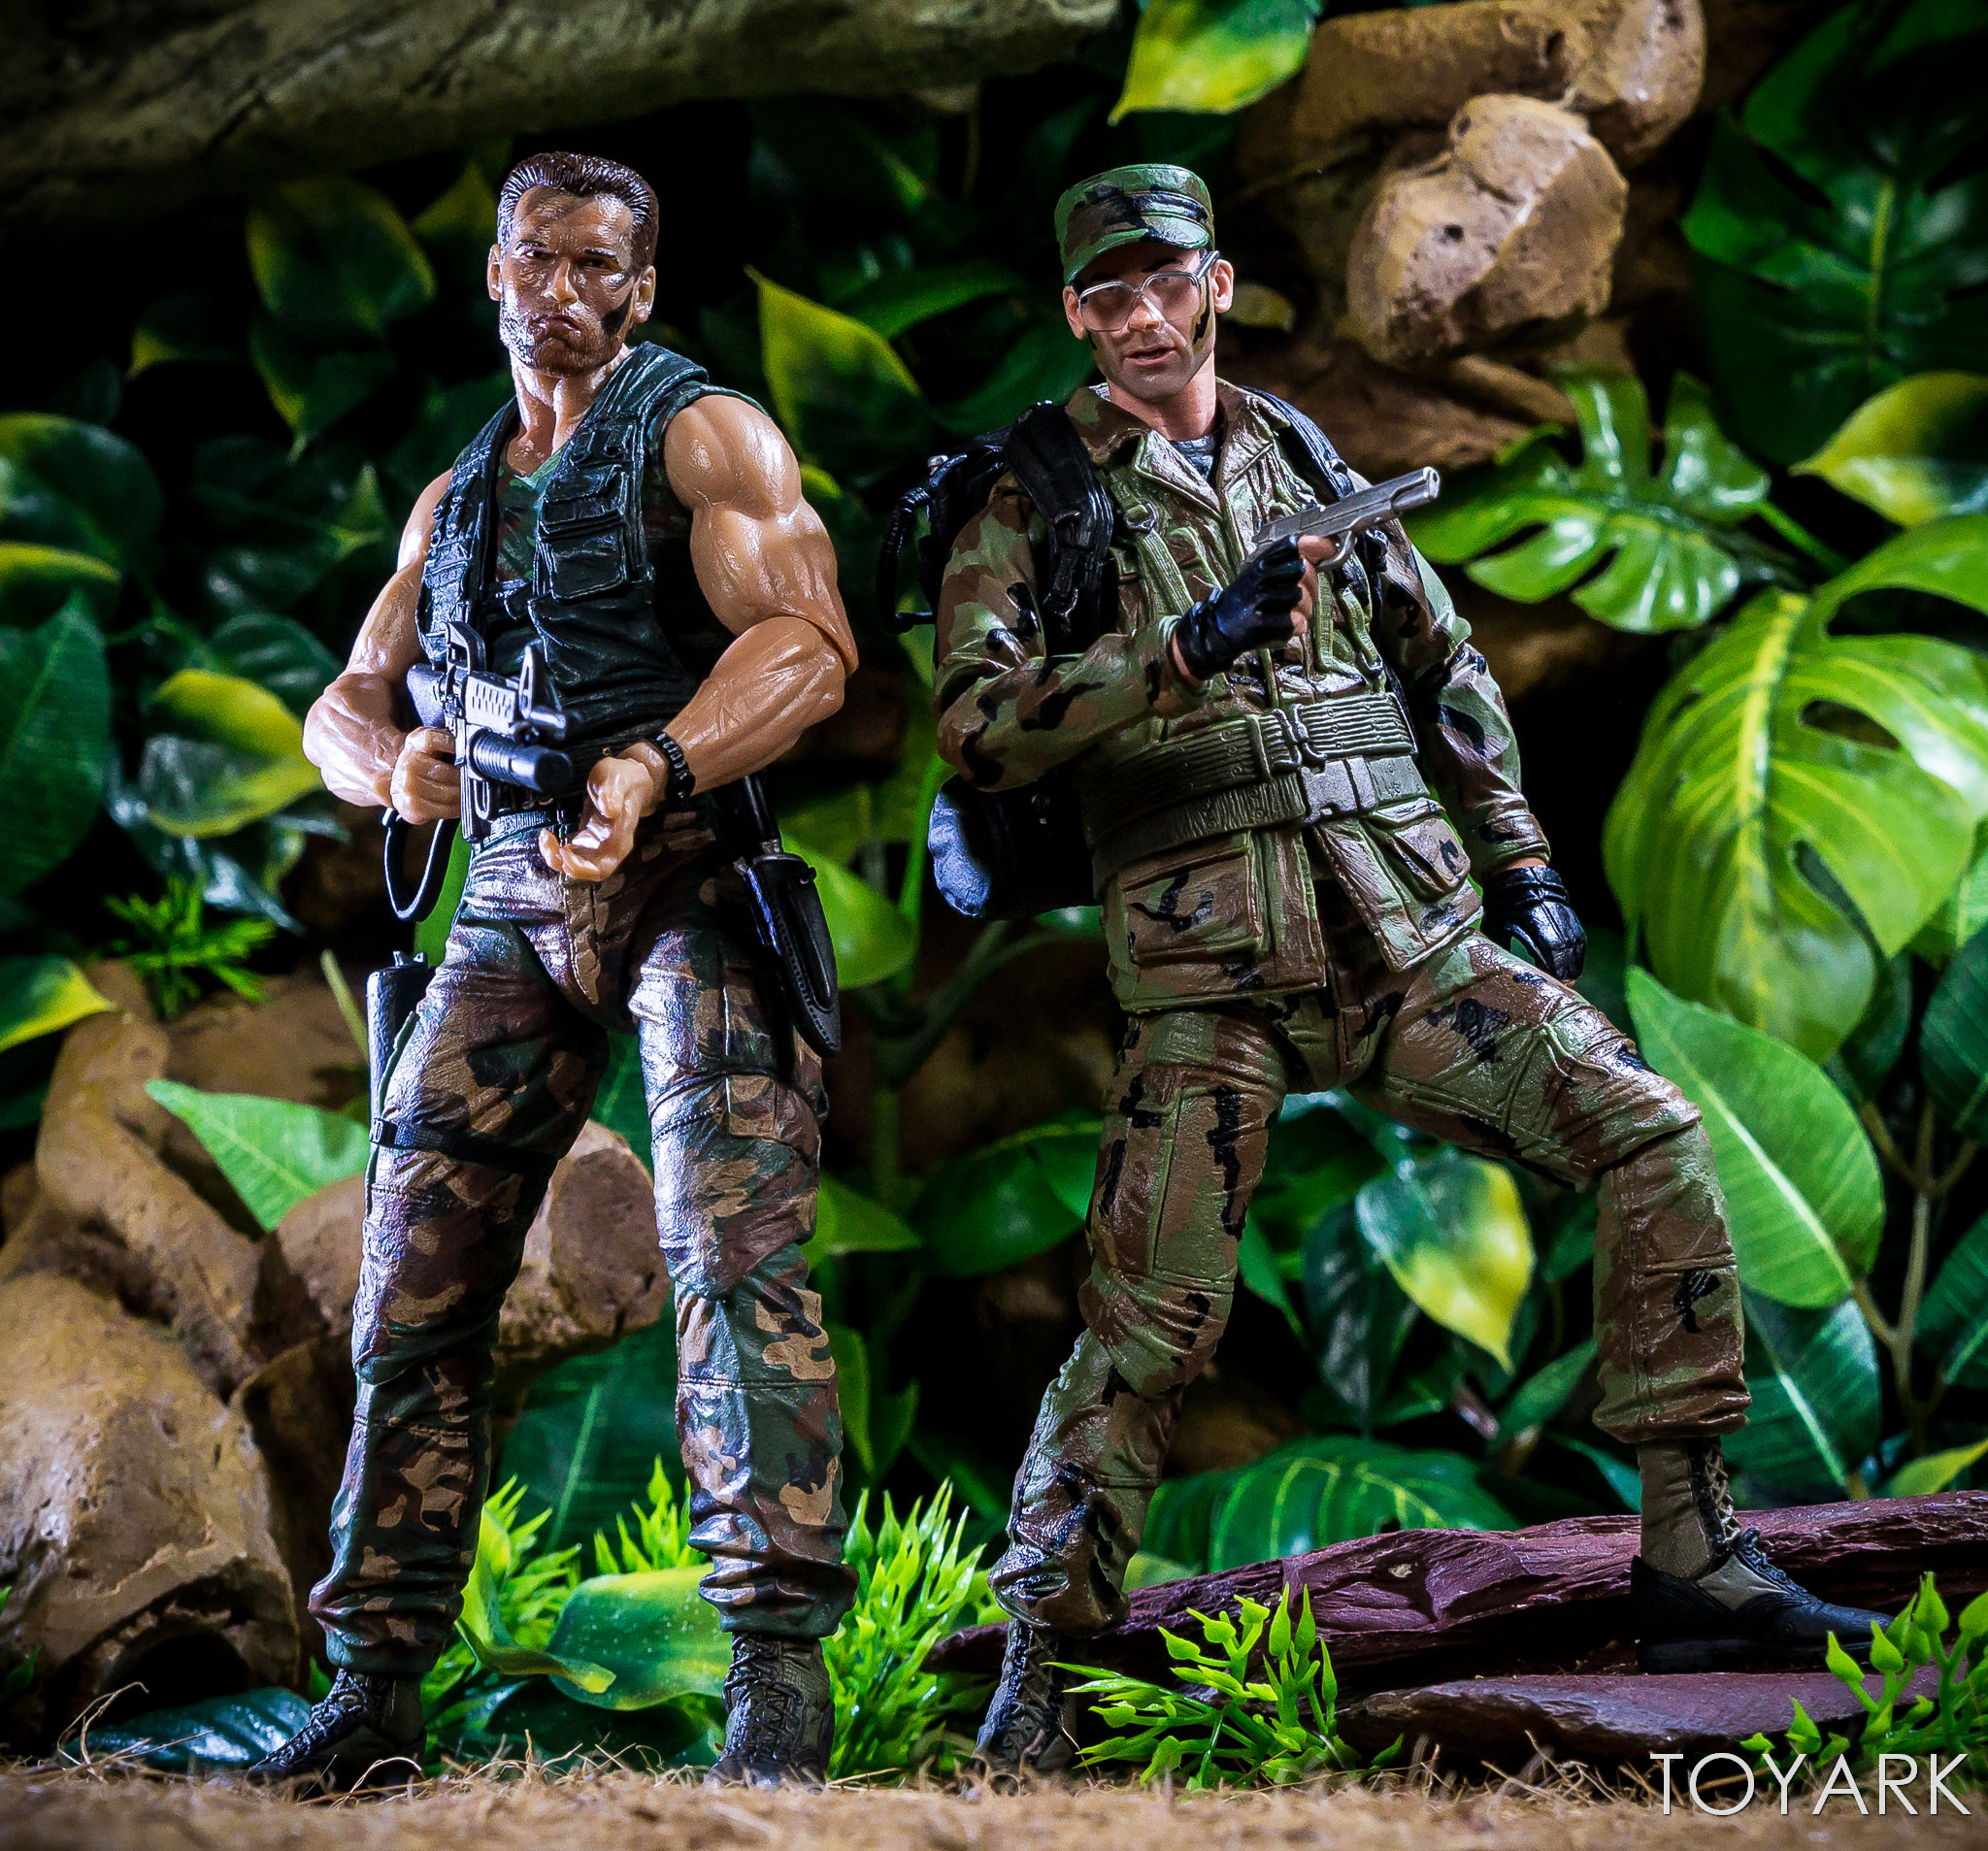 https://news.toyark.com/wp-content/uploads/sites/4/2018/07/NECA-SDCC2018-Predator-Hawkins-034.jpg